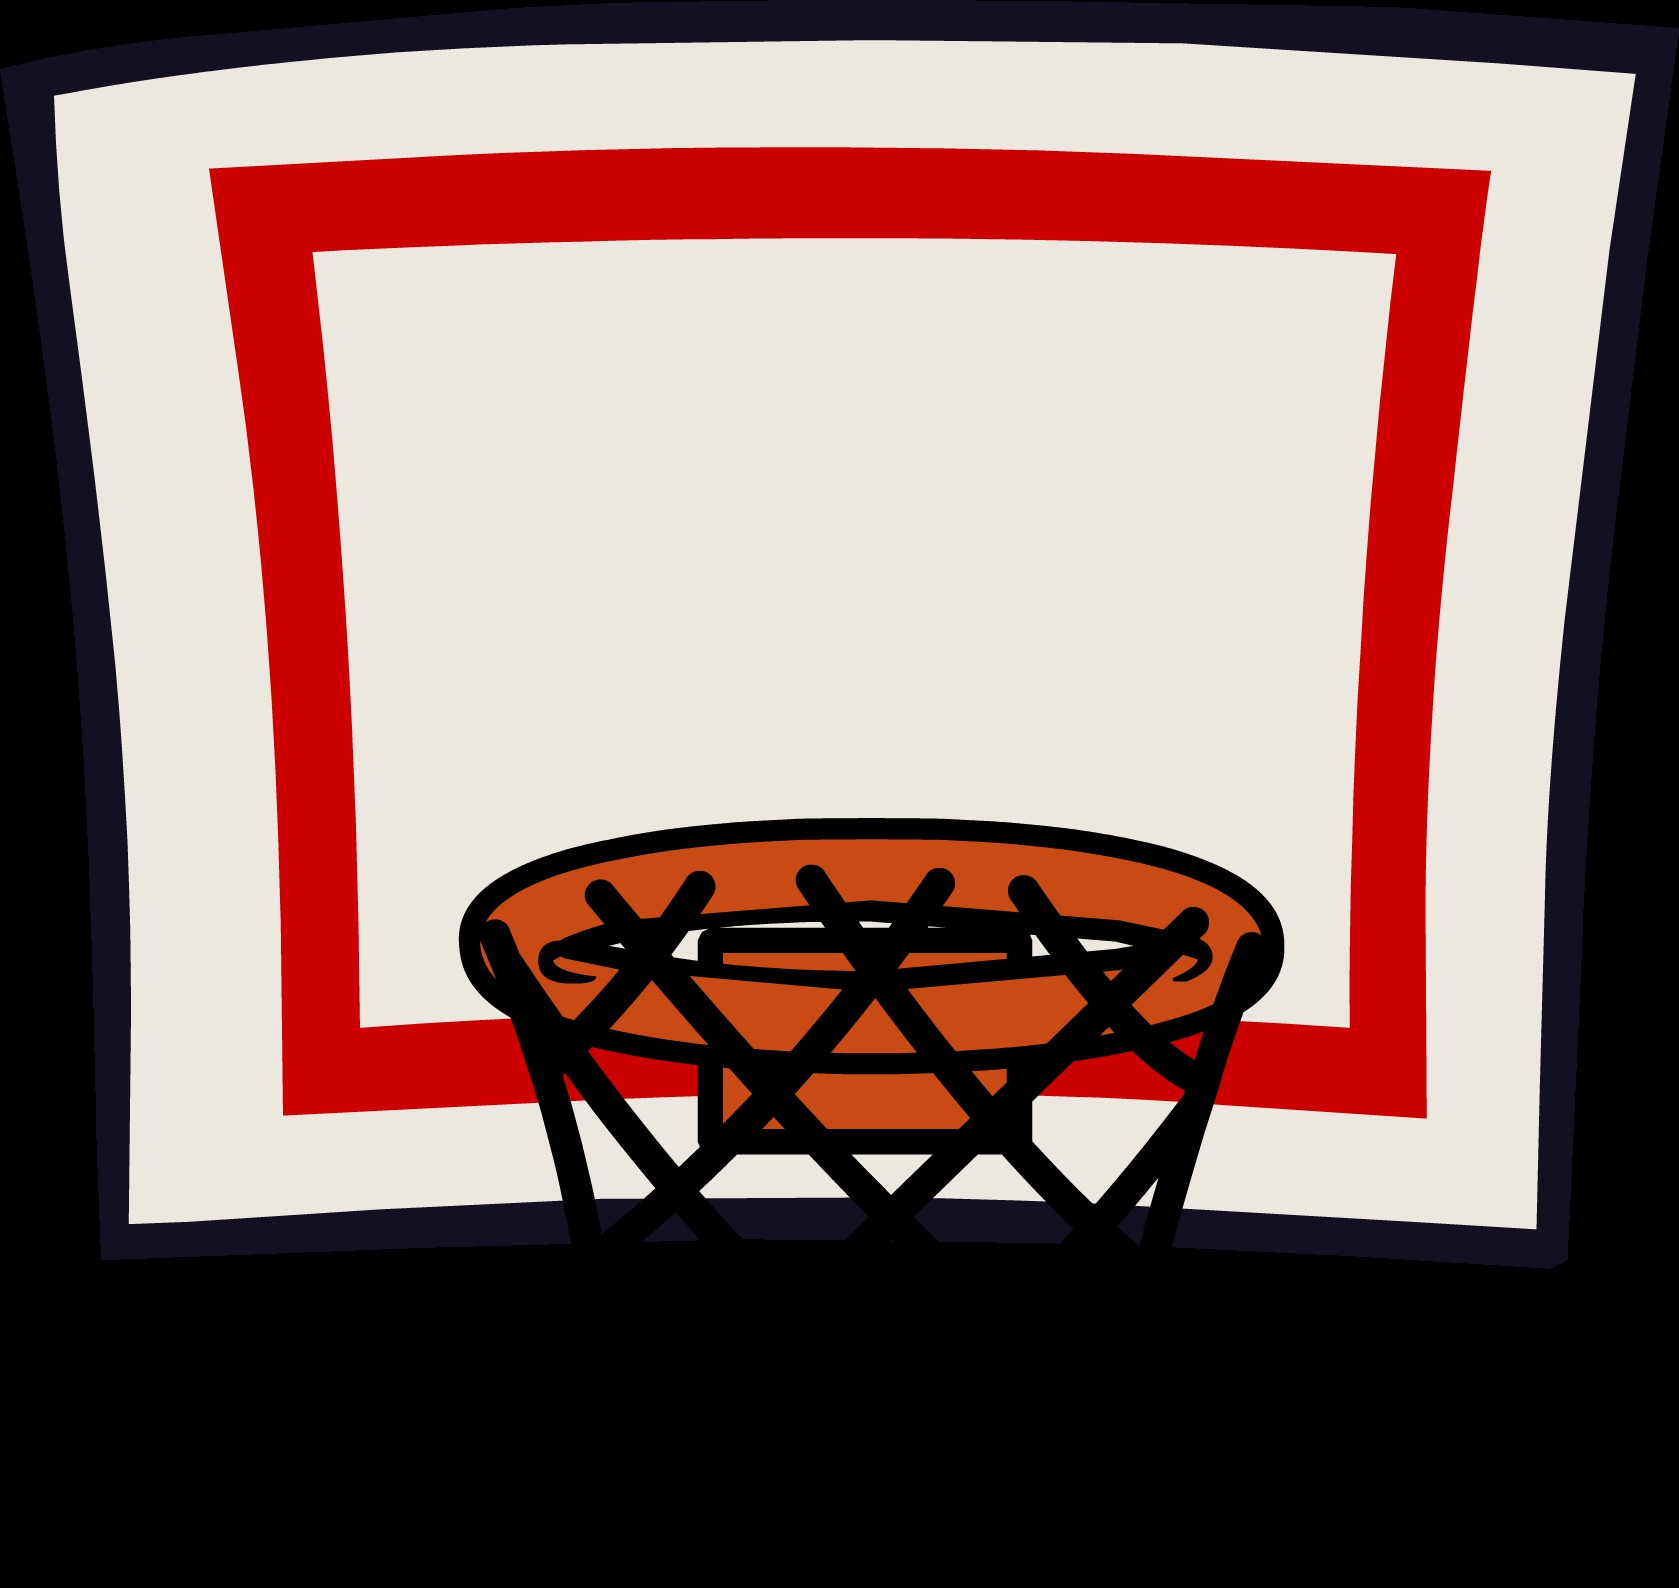 Hoop clipart baskeball. Basketball transitionsfv panda free